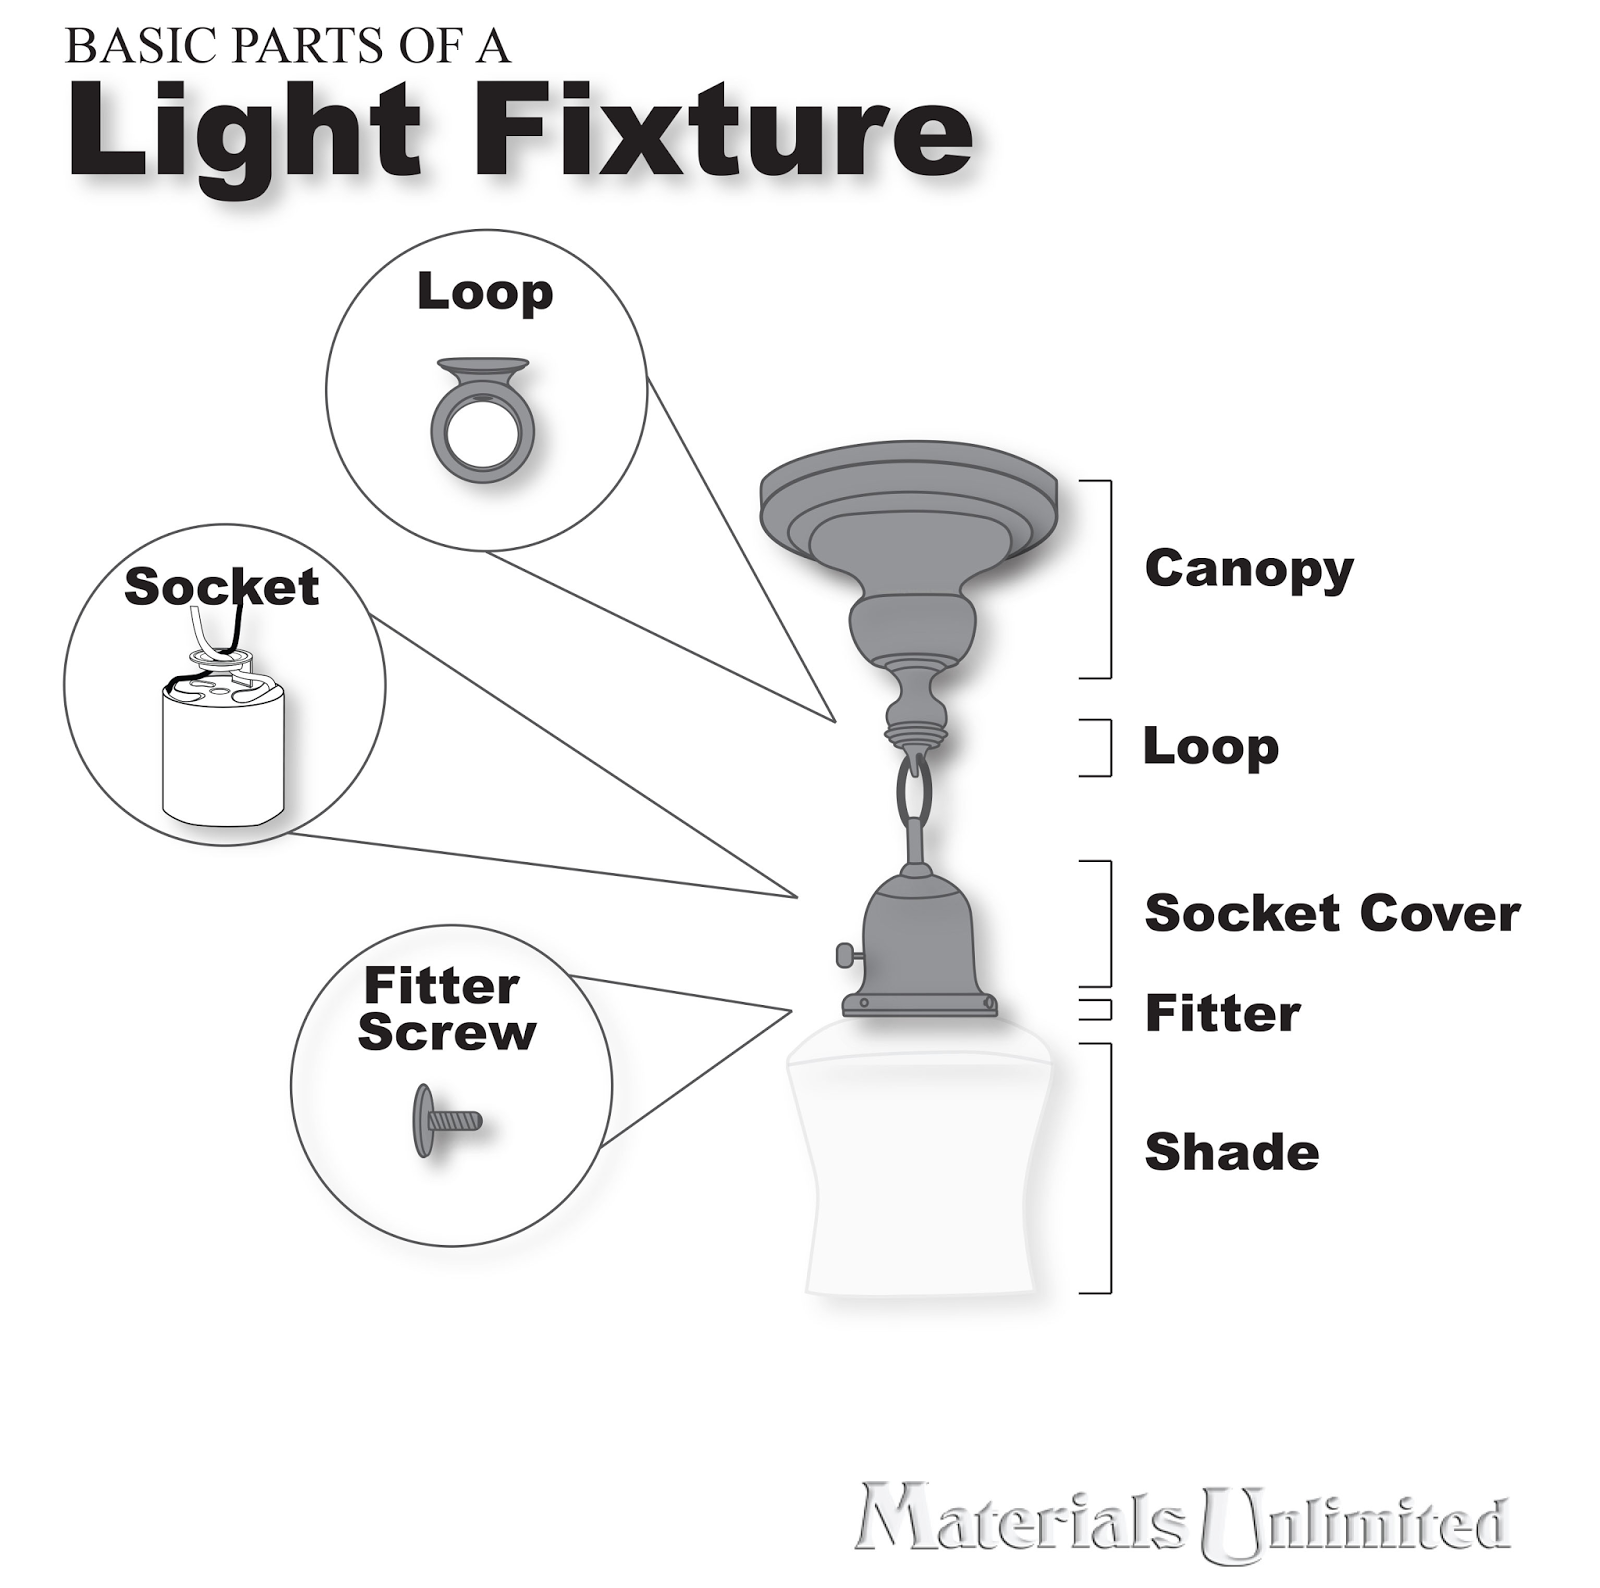 Basic Parts Of A Light Fixture